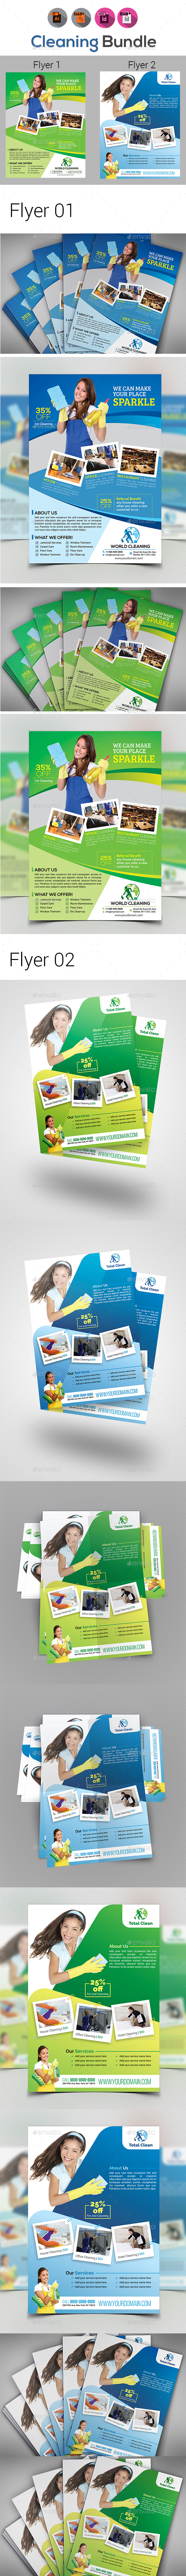 Cleaning Flyer Bundle V2 - Flyers Print Templates